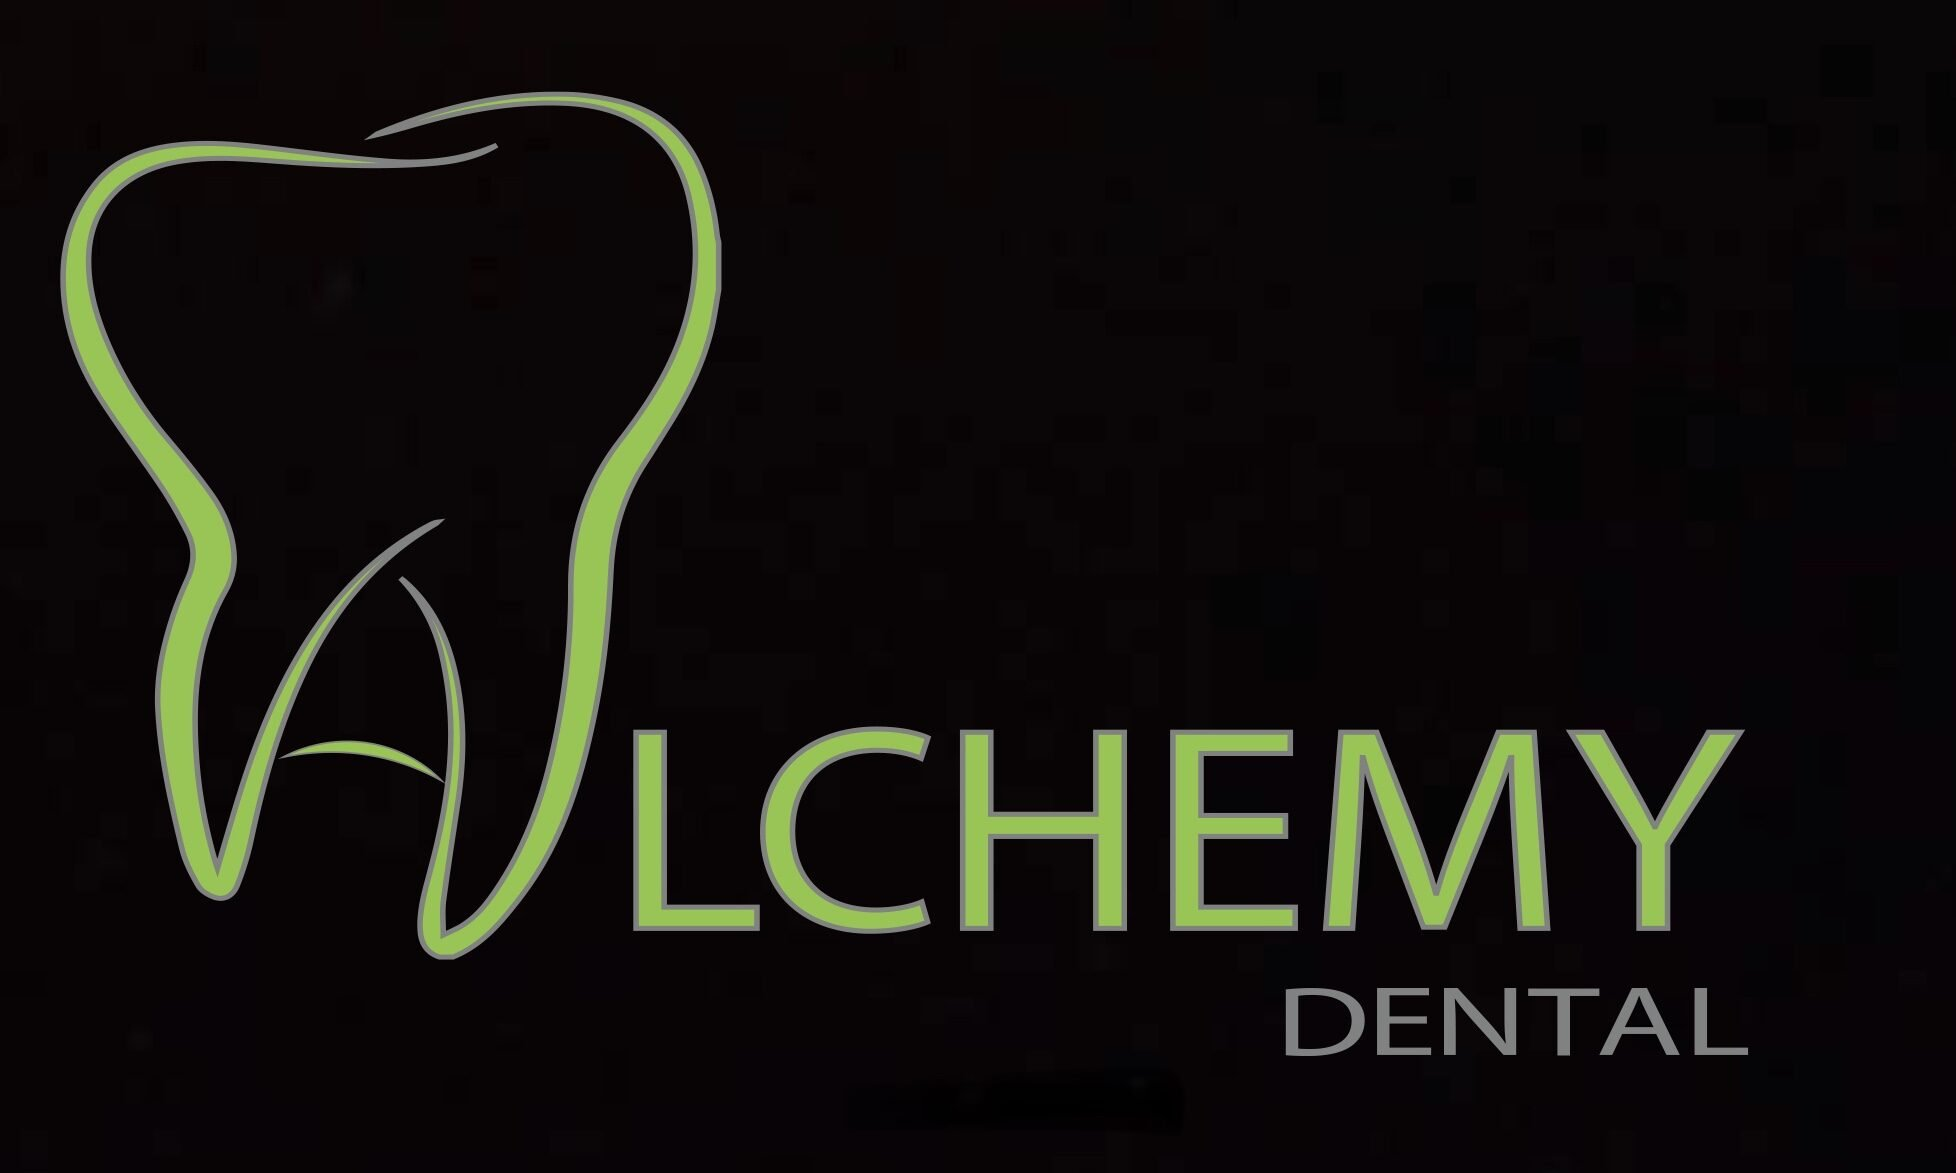 Alchemy Dental, Inc.